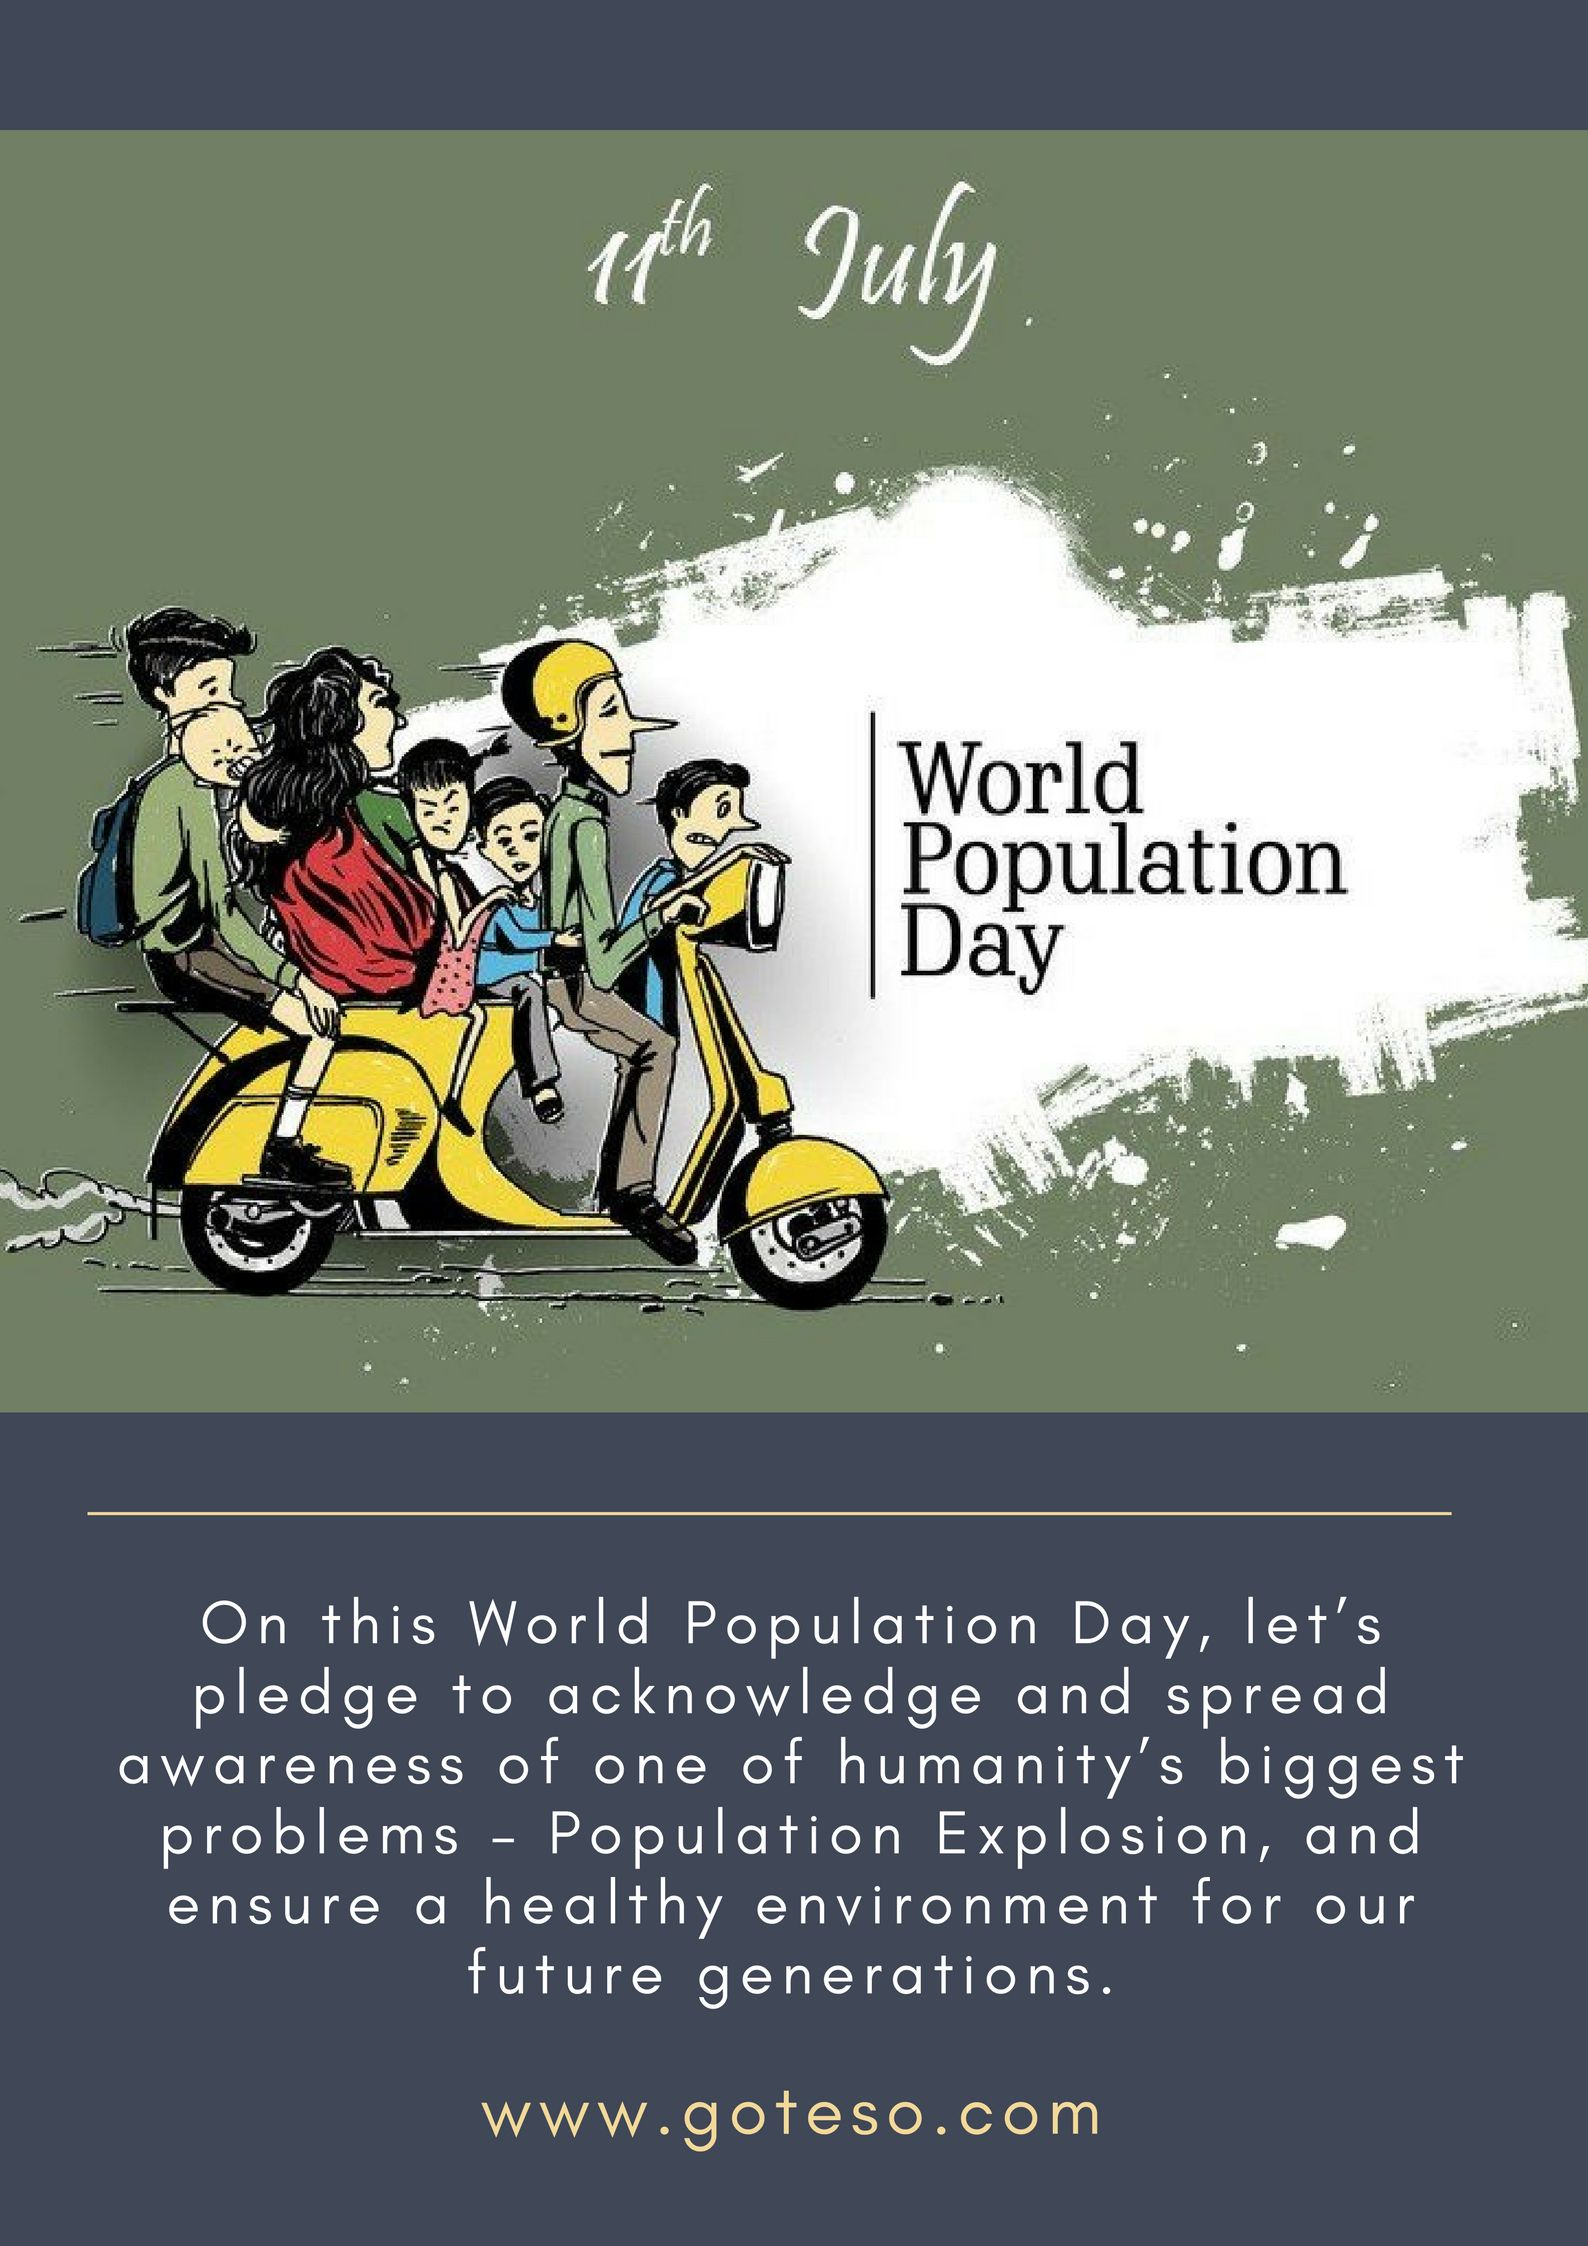 World Population Day 11July Goteso Mobile app